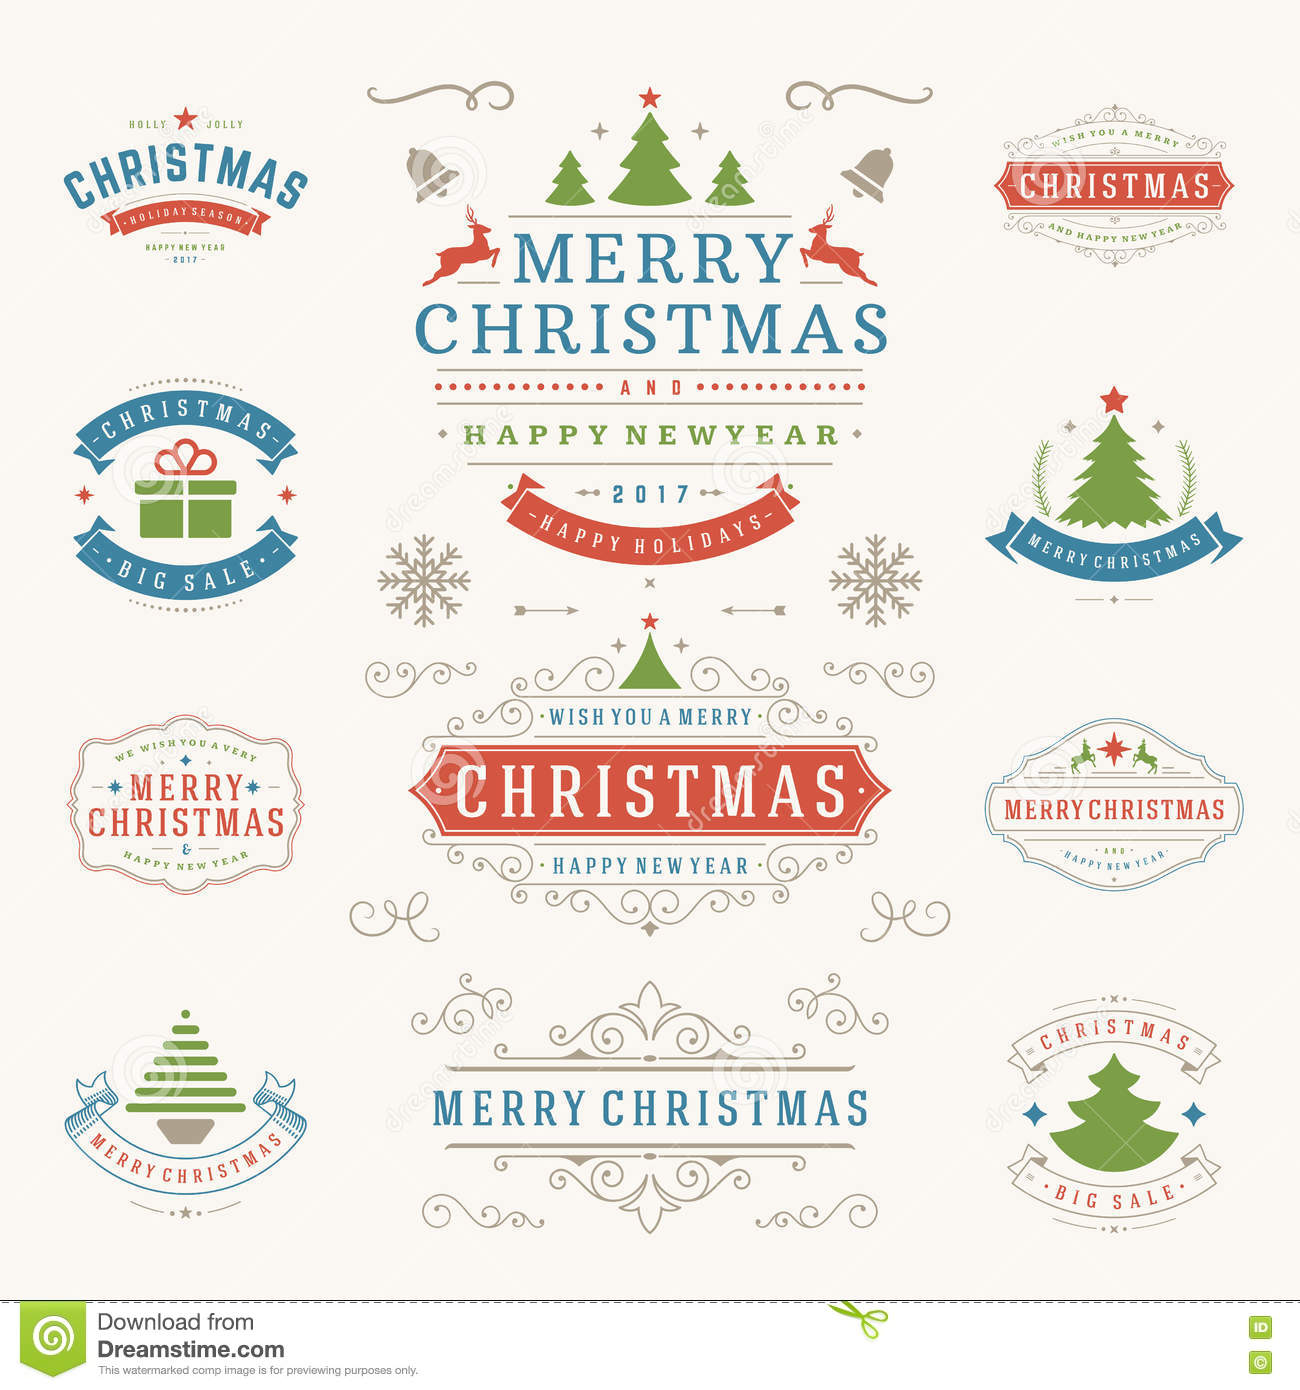 Merry Christmas Labels.Christmas Labels And Badges Vector Design Elements Set